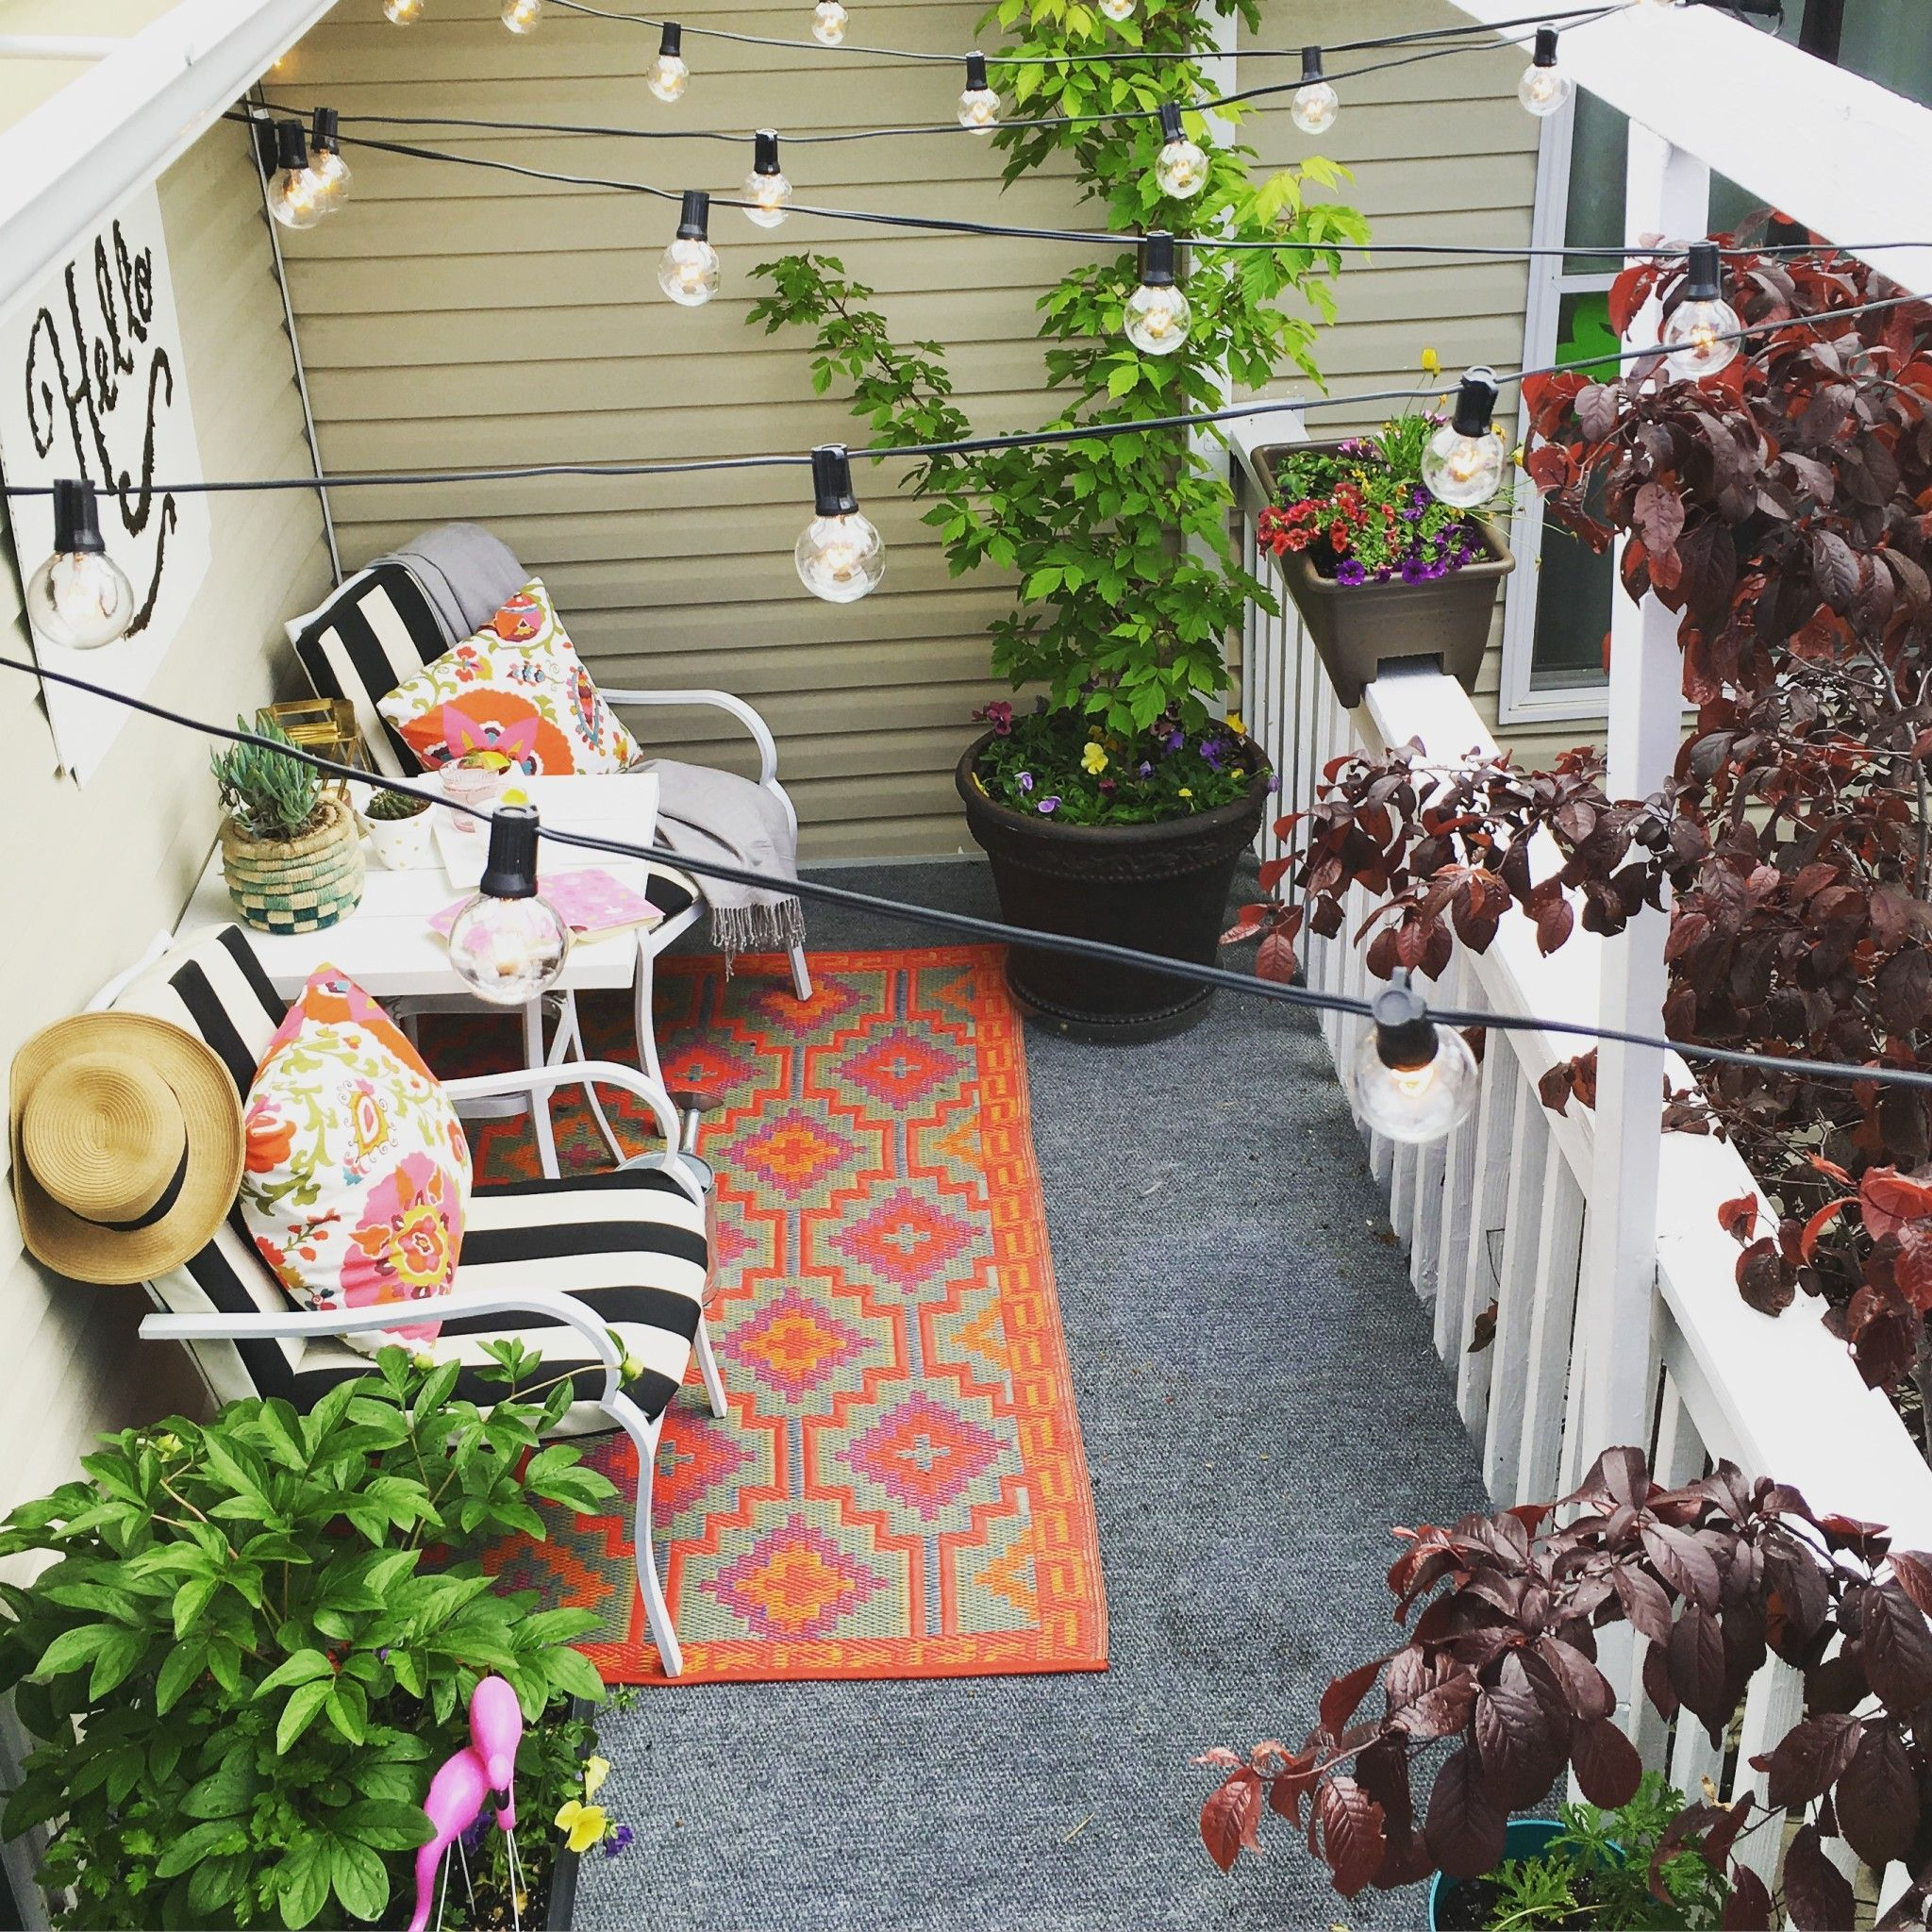 Ideas For How To Decorate A Patio For Cheap At Home With Ashley In 2020 Outdoor Deck Decorating Patio Budget Home Decorating